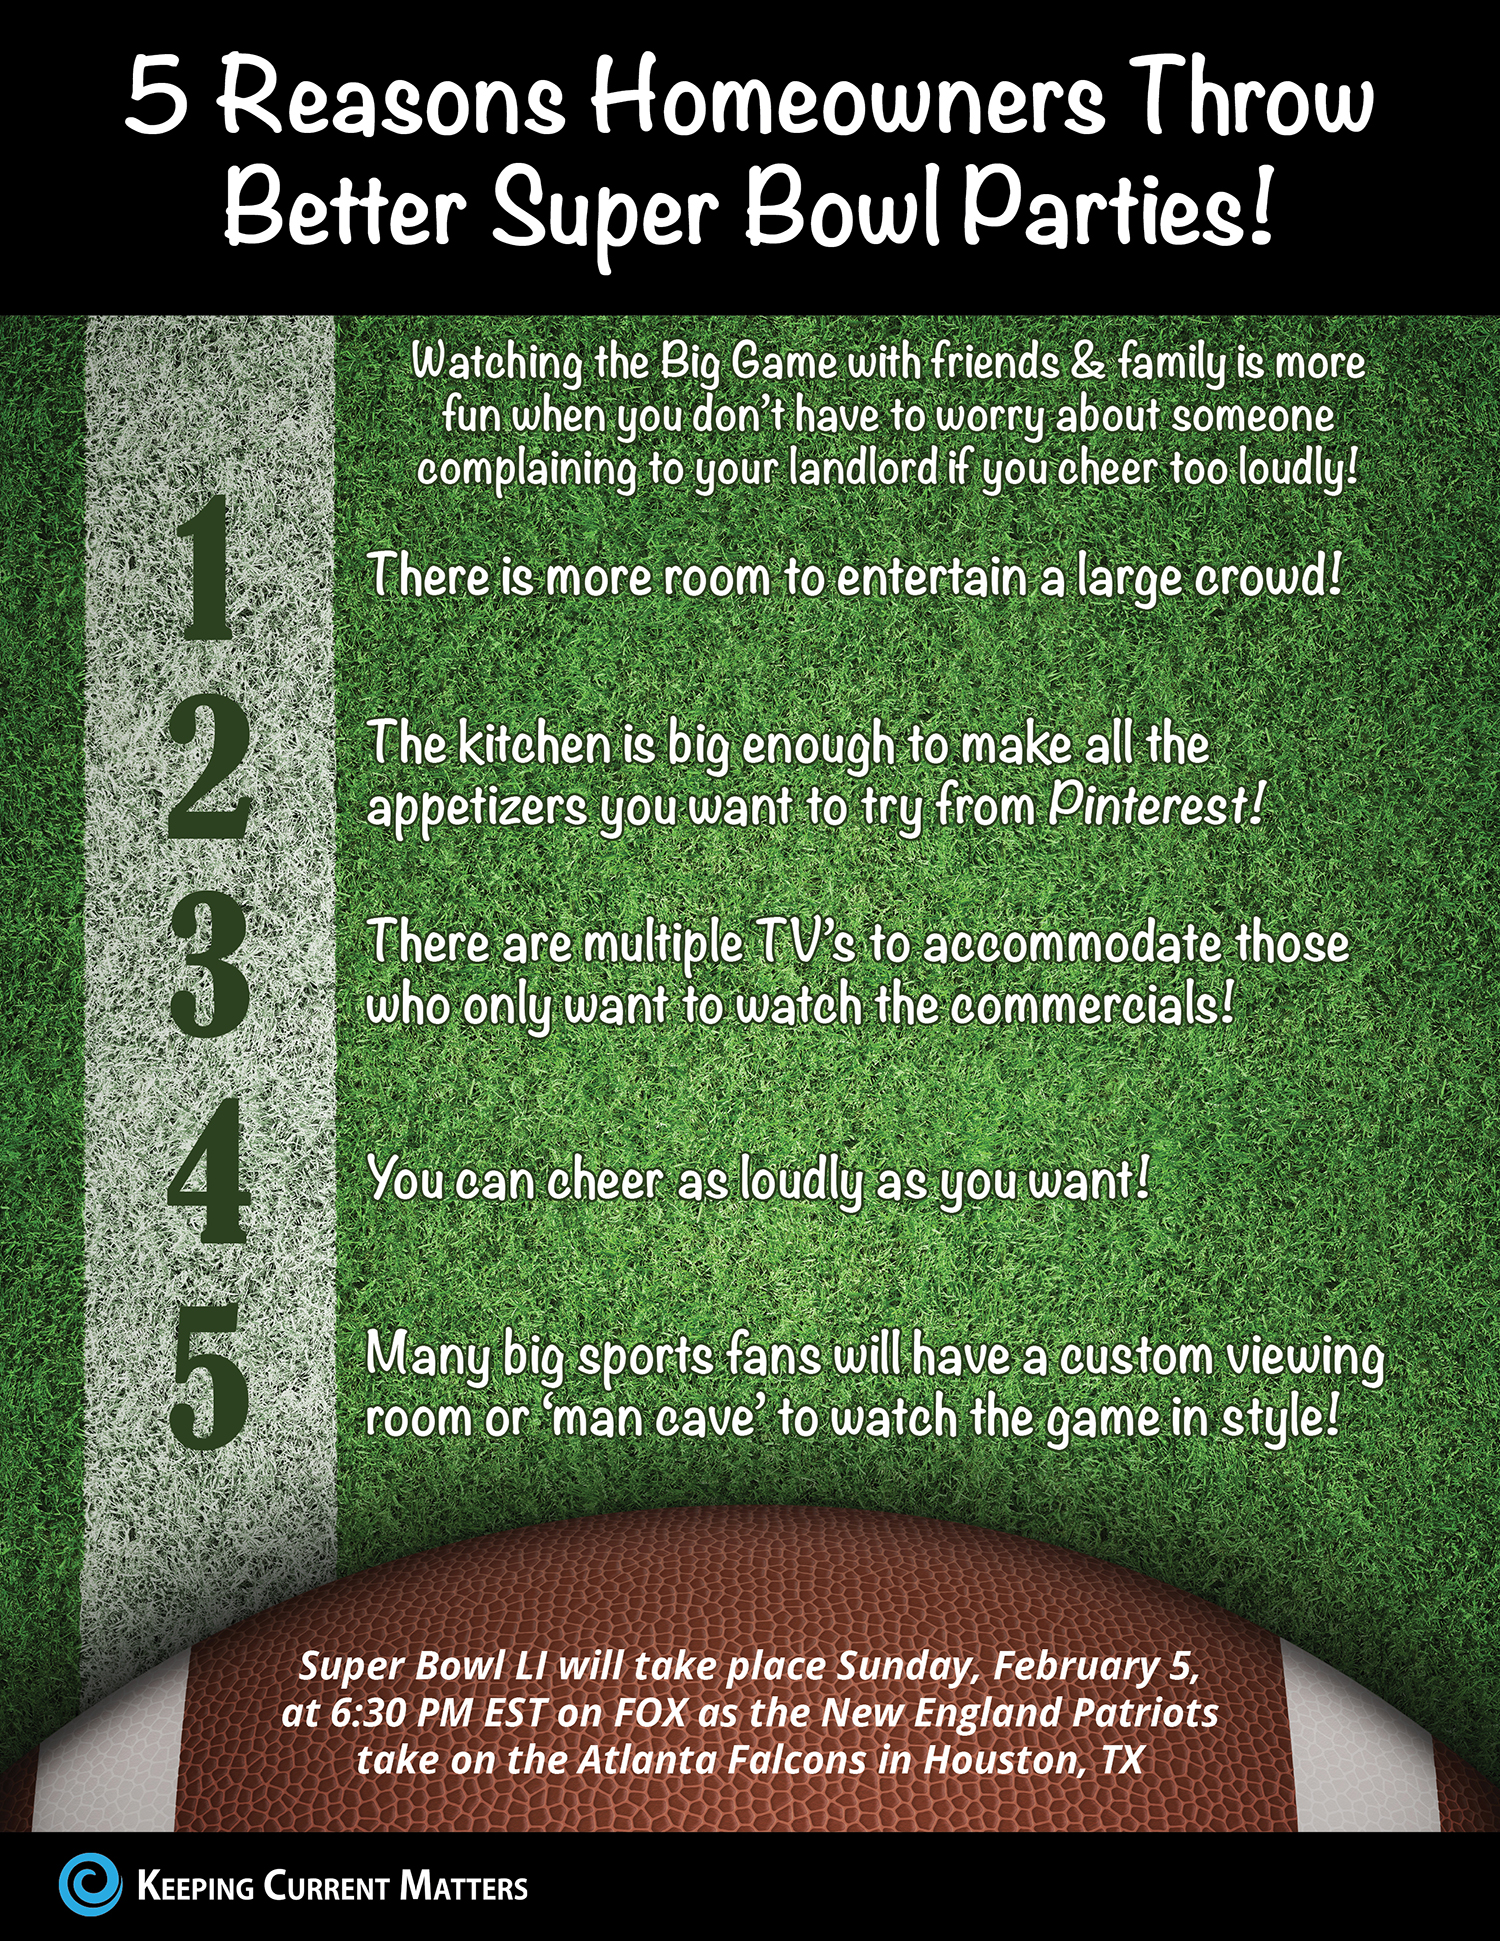 5 Reasons Homeowners Throw Better Super Bowl Parties! [INFOGRAPHIC]   Keeping Current Matters